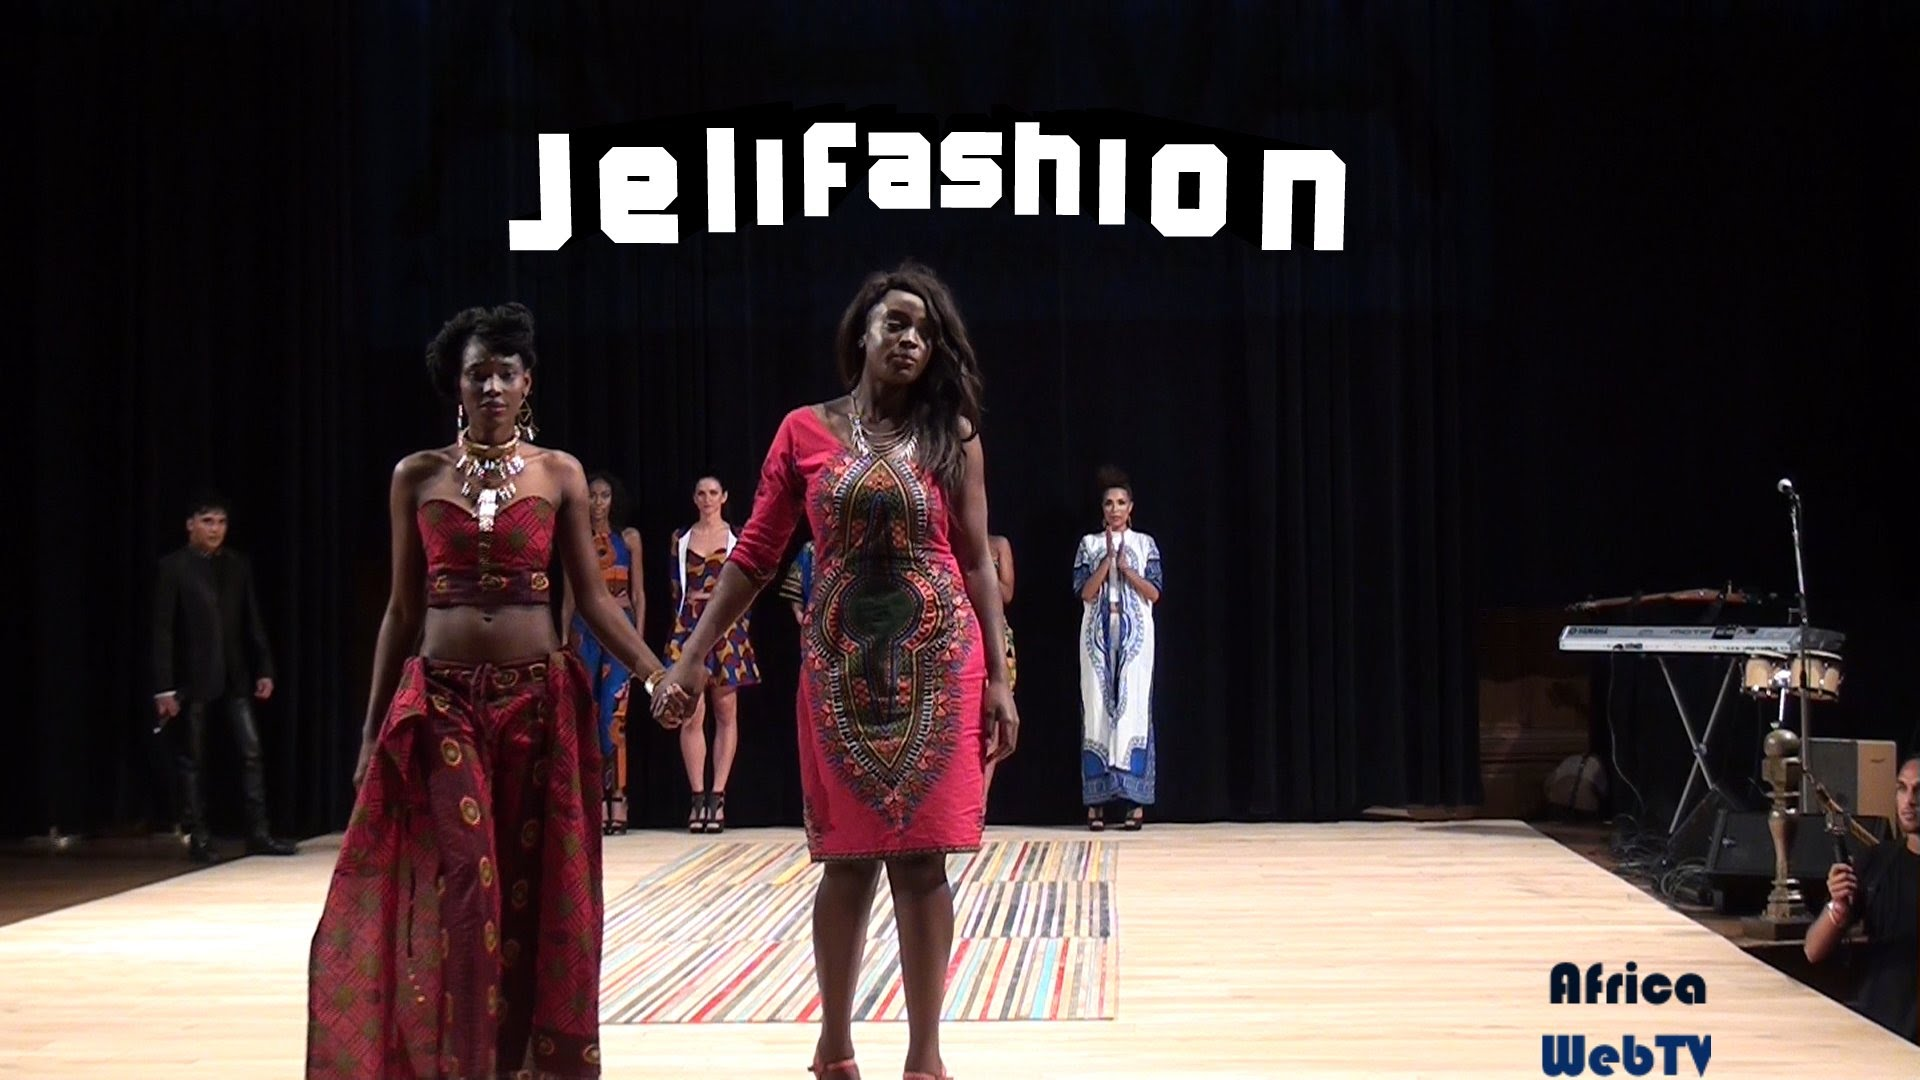 Jelifashion – Africa Fashion Week Amsterdam 2015